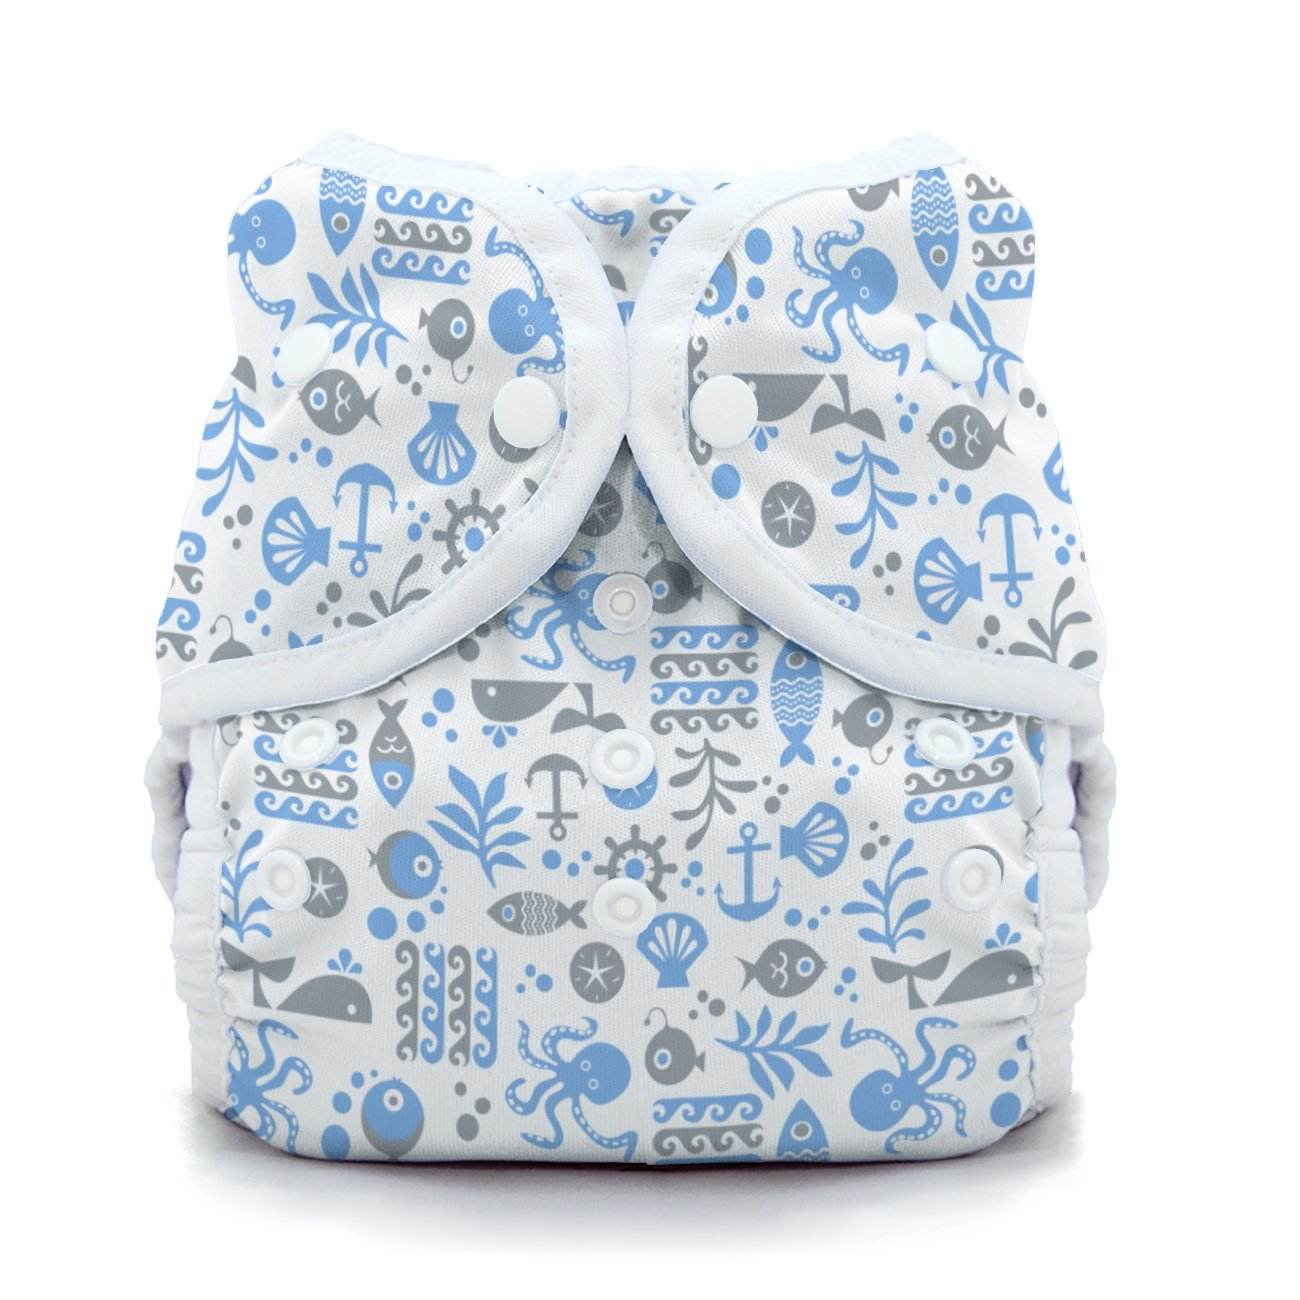 Thirsties Duo Wrap Cloth Diaper Cover - Ocean Life - Size 2 - Snap